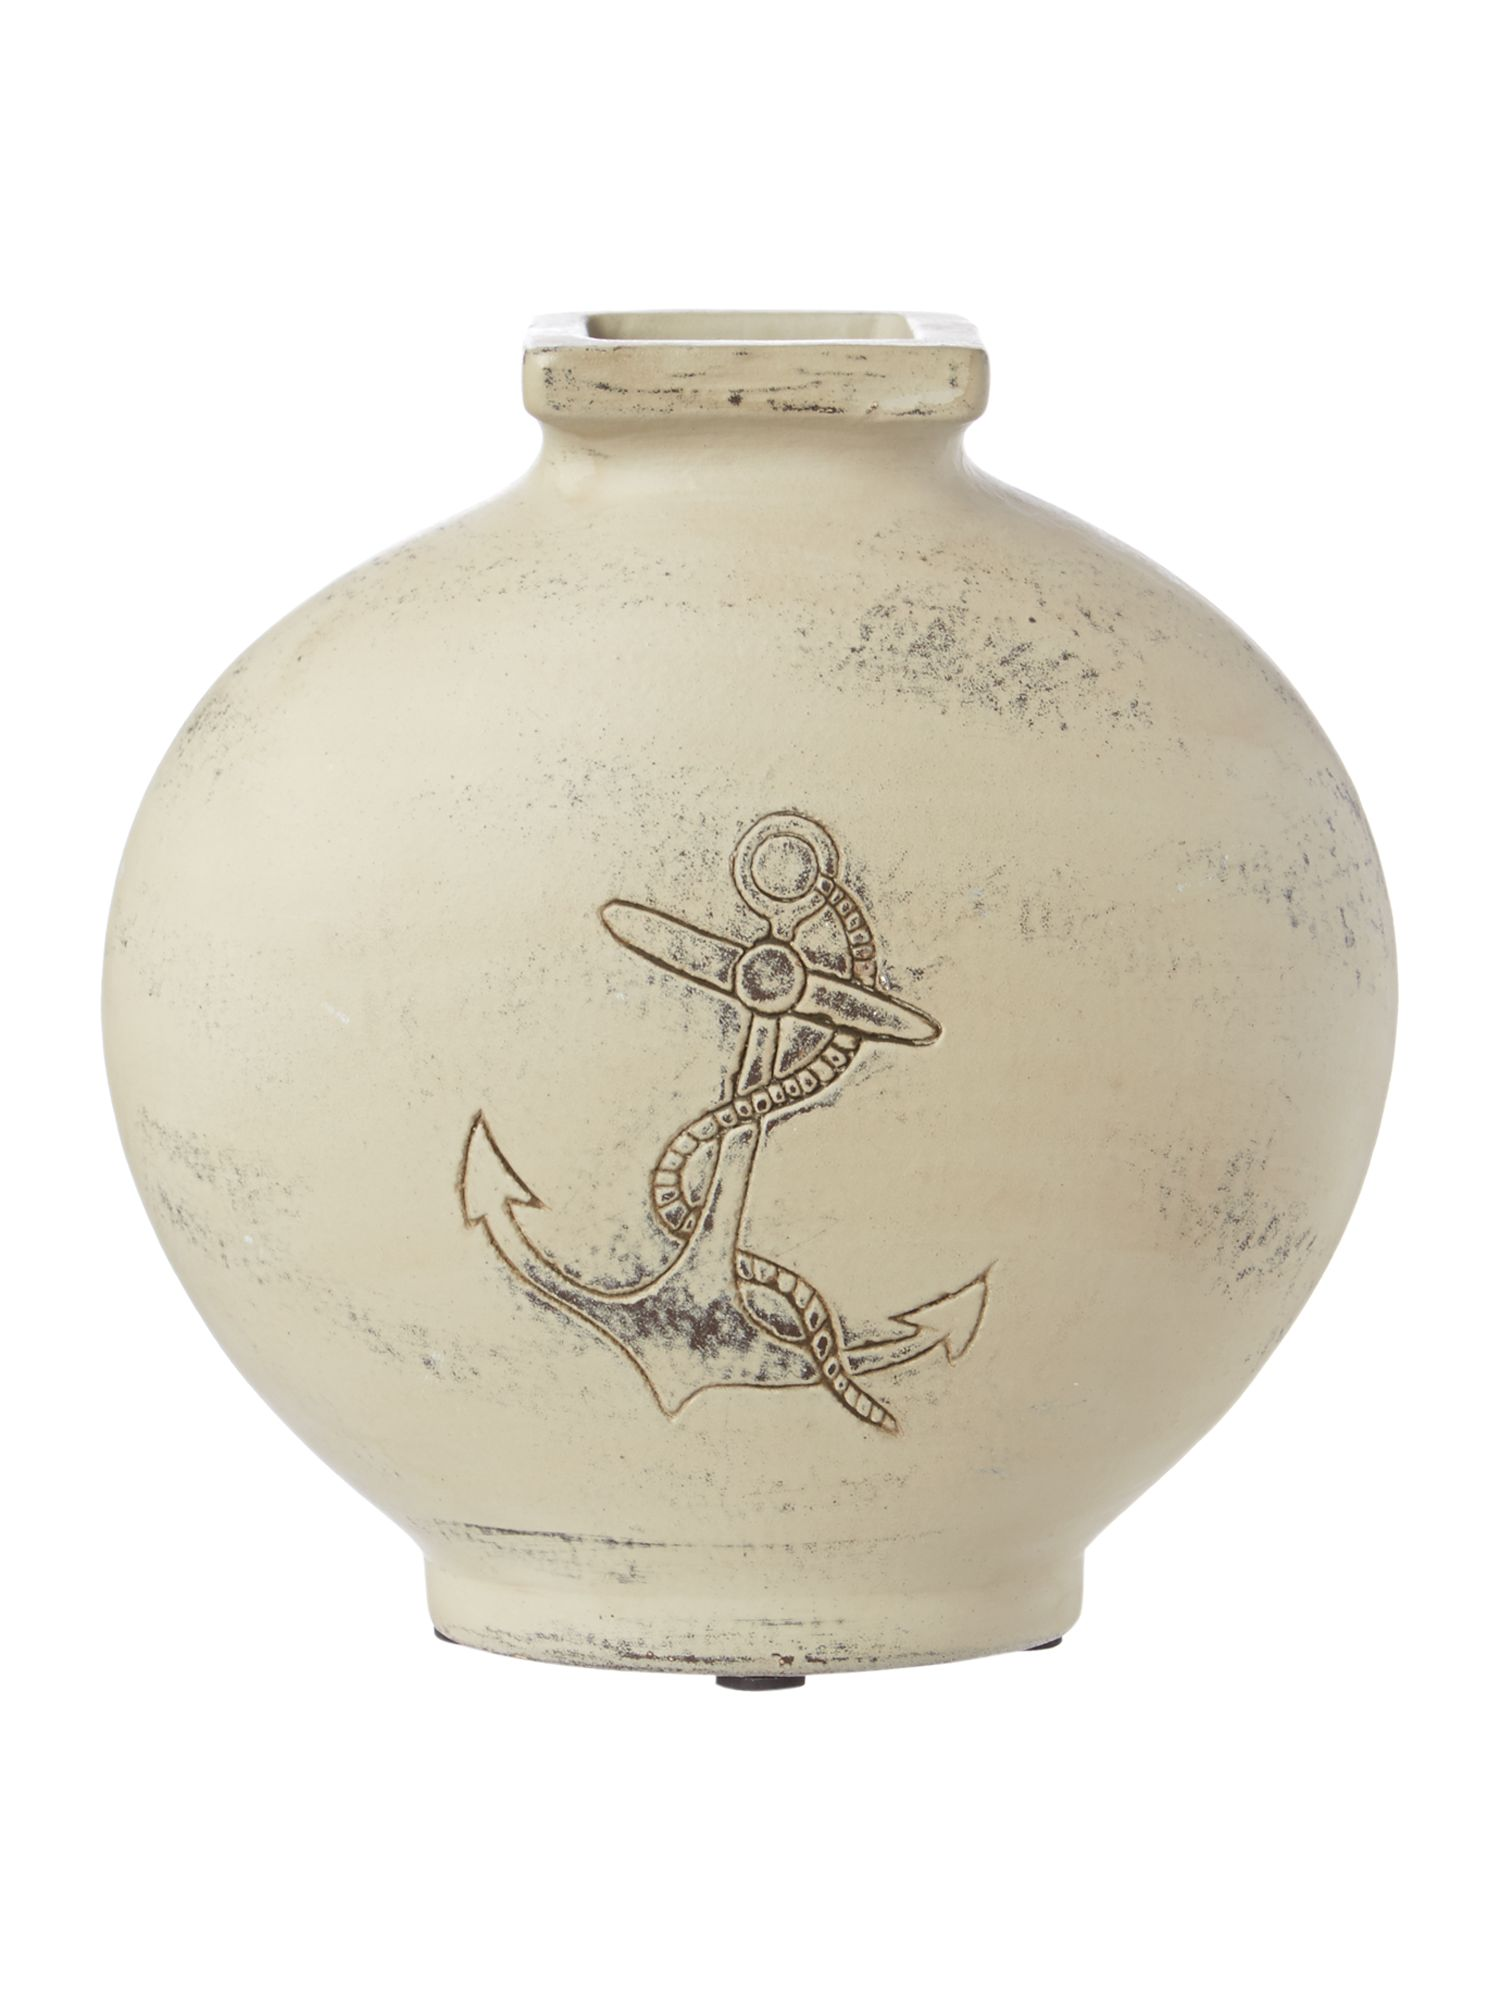 Anchor ceramic vase